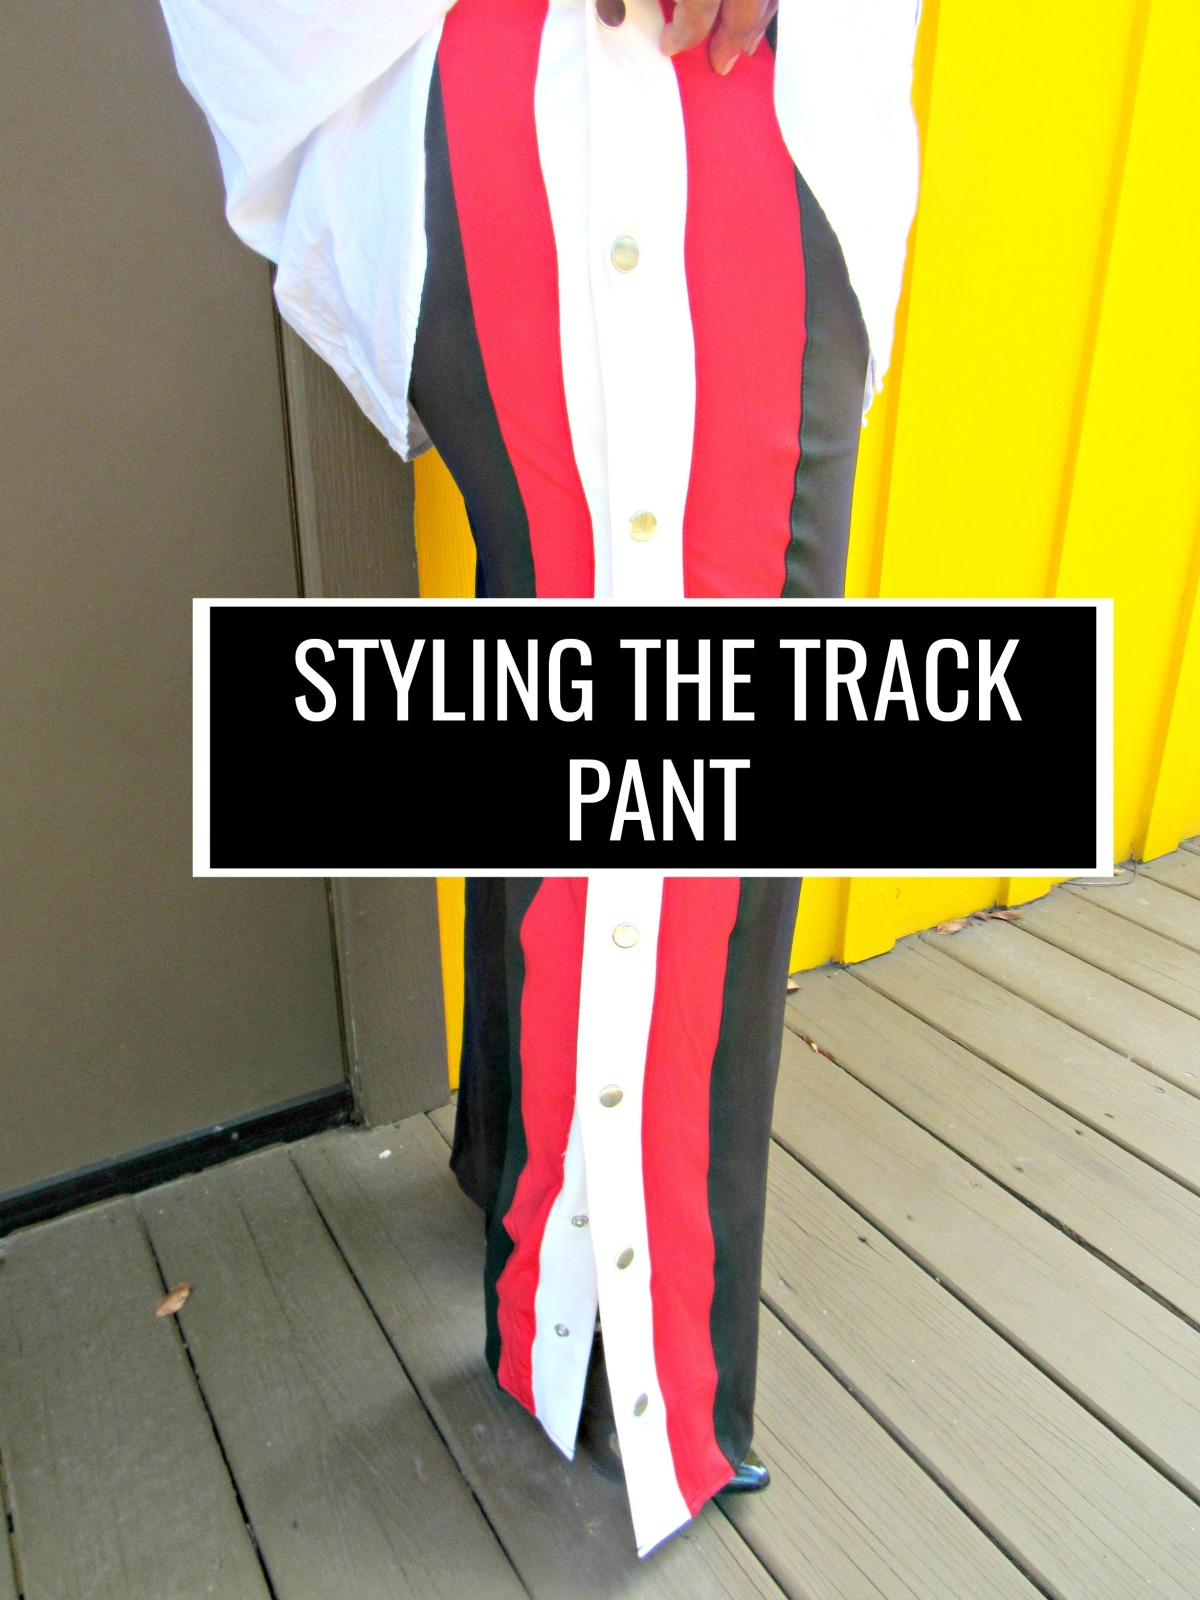 Styling the Track Pant